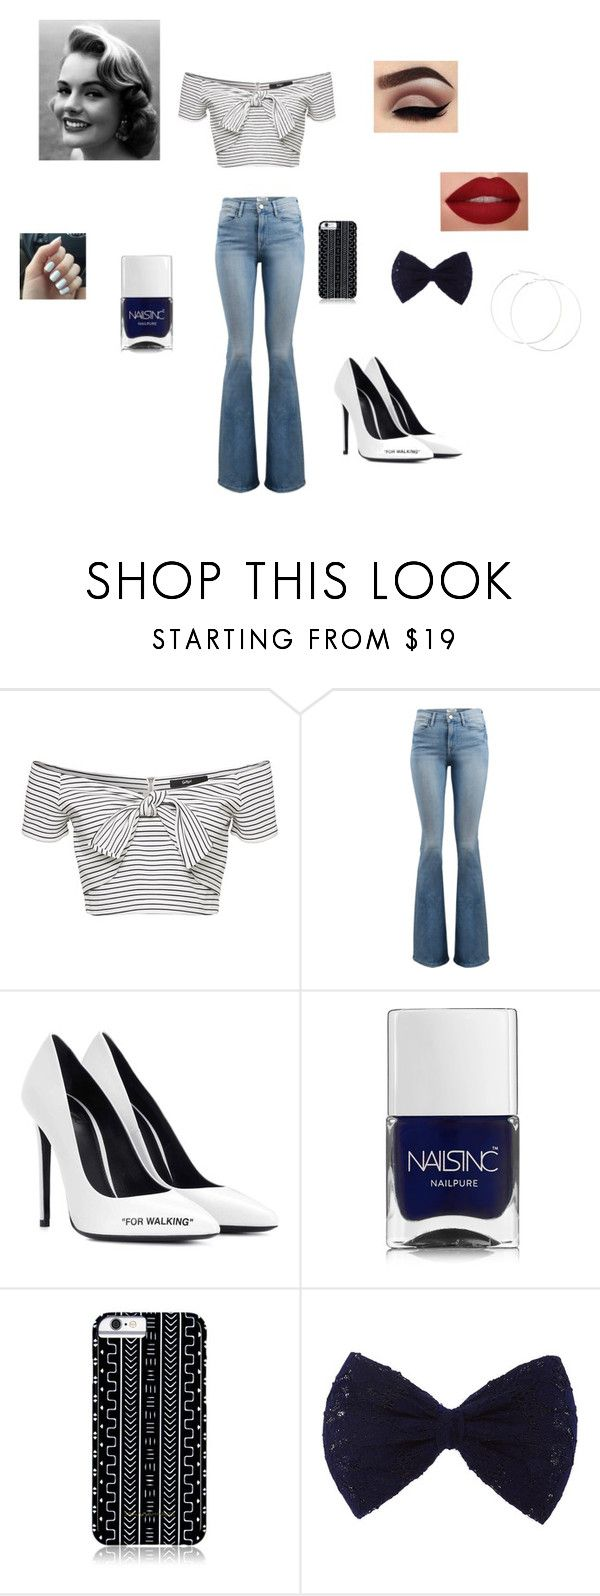 """Untitled #145"" by hannah-013 ❤ liked on Polyvore featuring Frame, Off-White, Nails Inc. and Savannah Hayes"